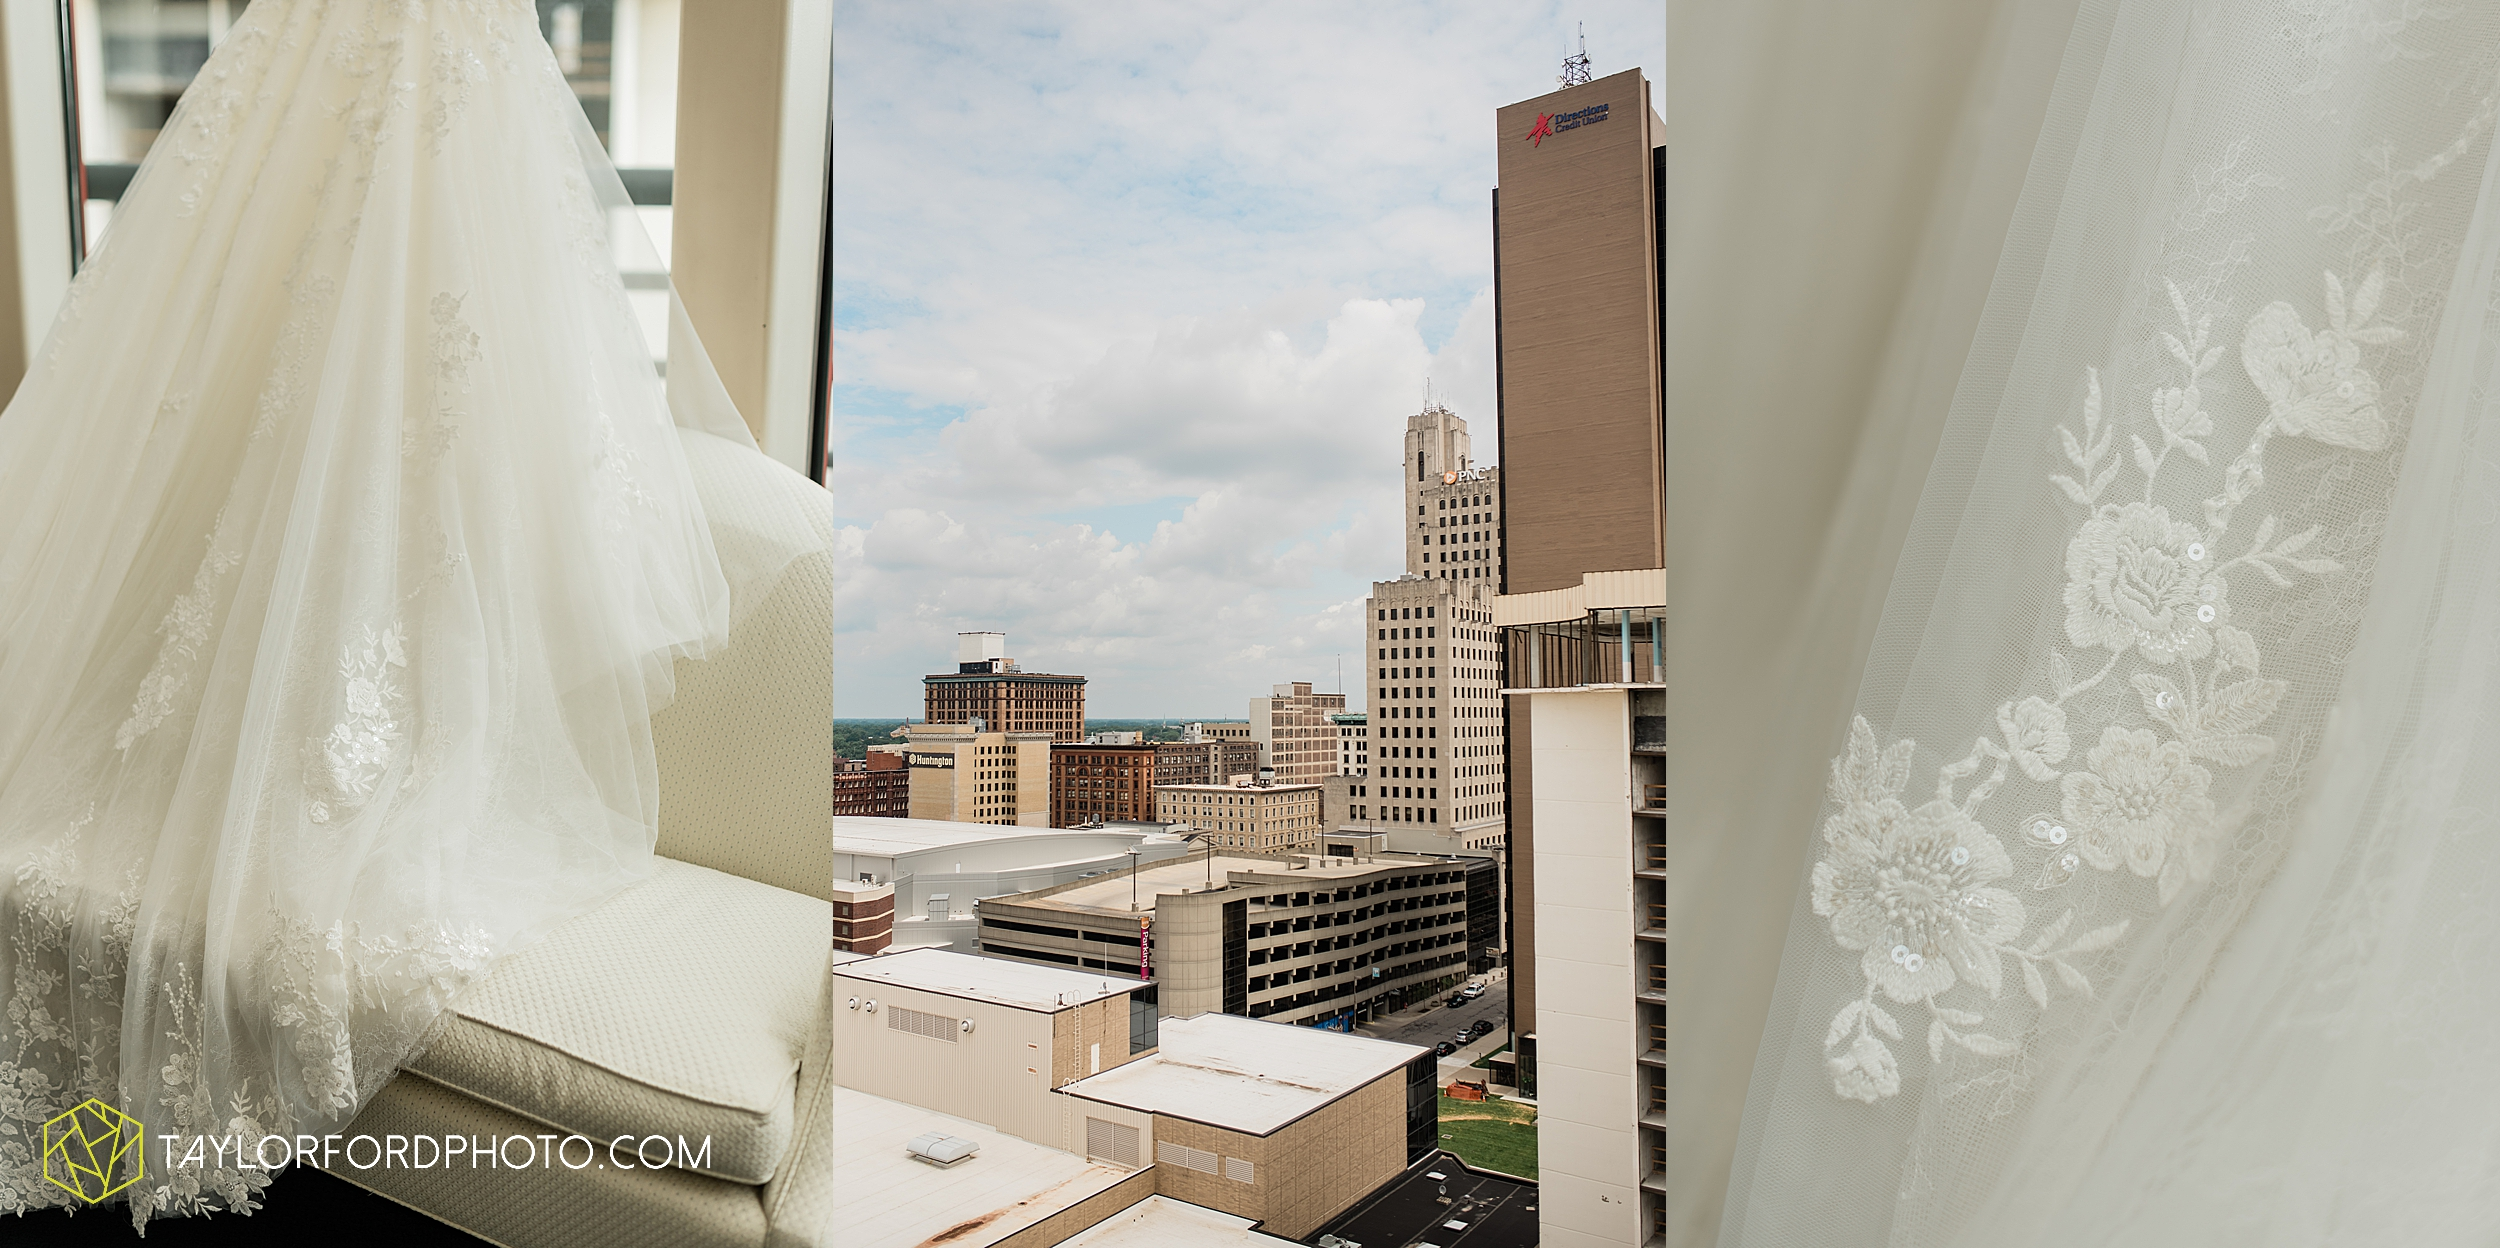 toledo-ohio-wedding-the-park-inn-by-radisson-hotel-art-museum-summit-event-center-photography-taylor-ford-hirschy-photographer_3667.jpg